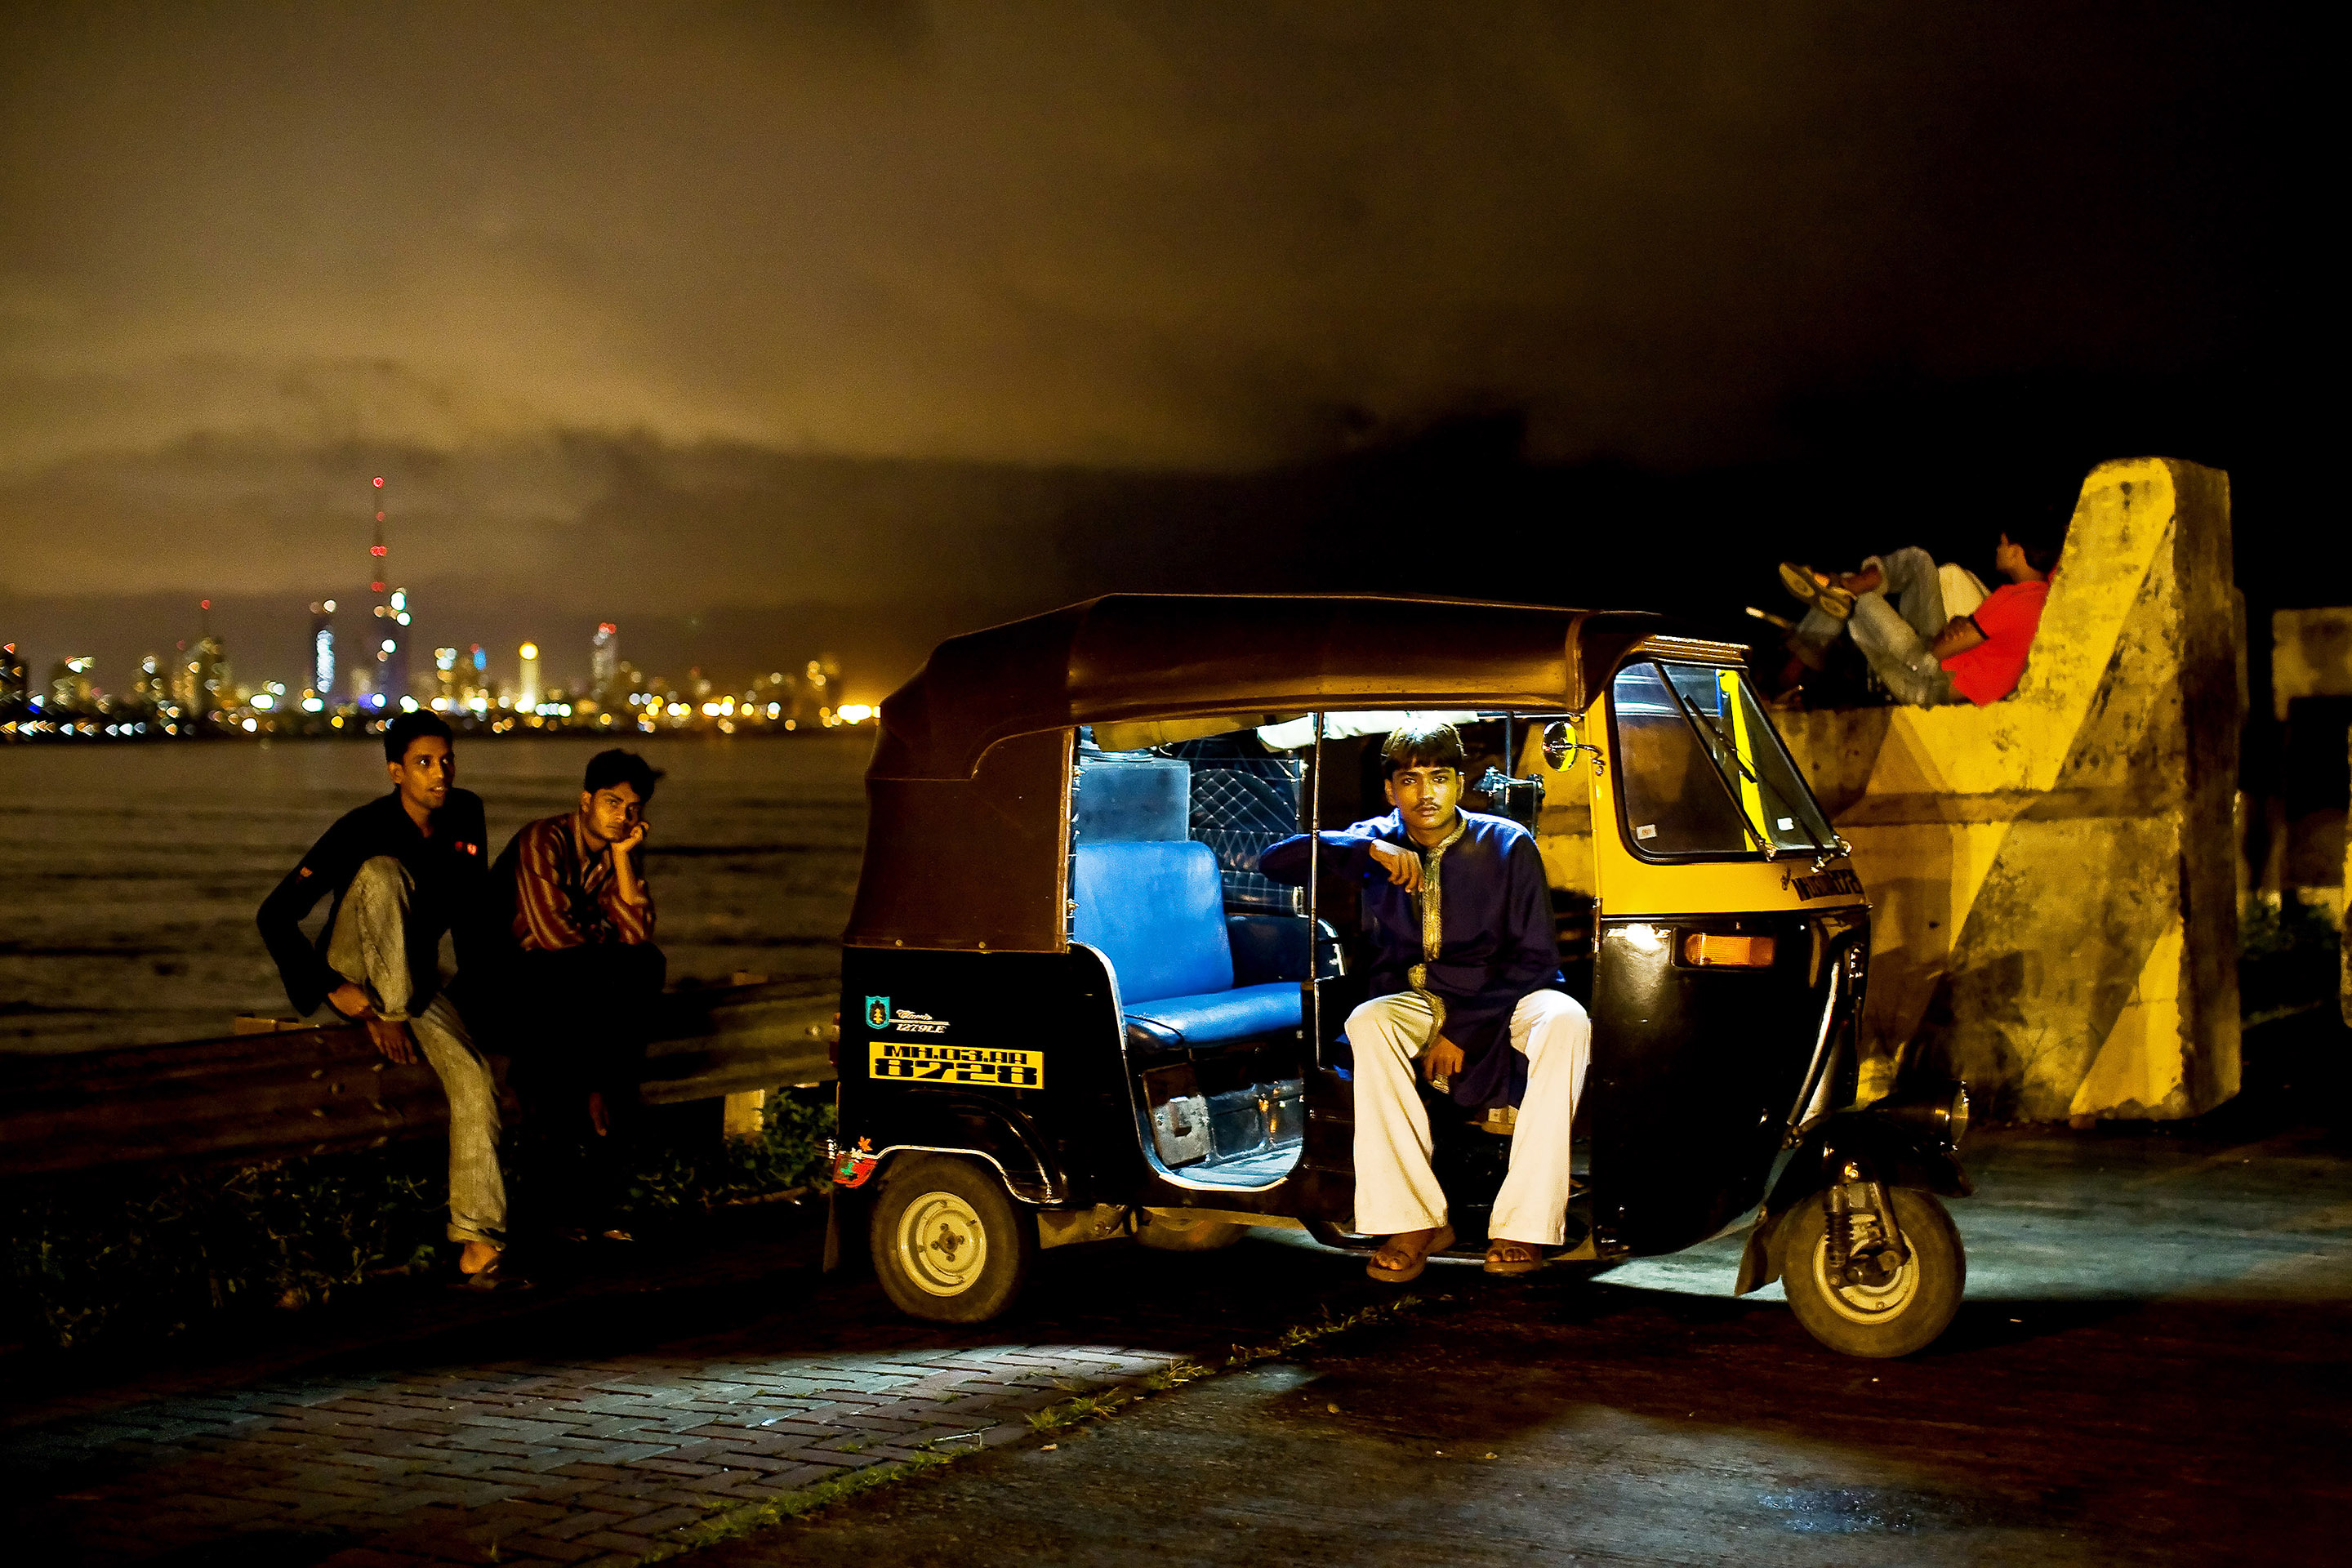 MUMBAI: The Taxi Driver Lala, 17, has been operating an auto rickshaw for two years.